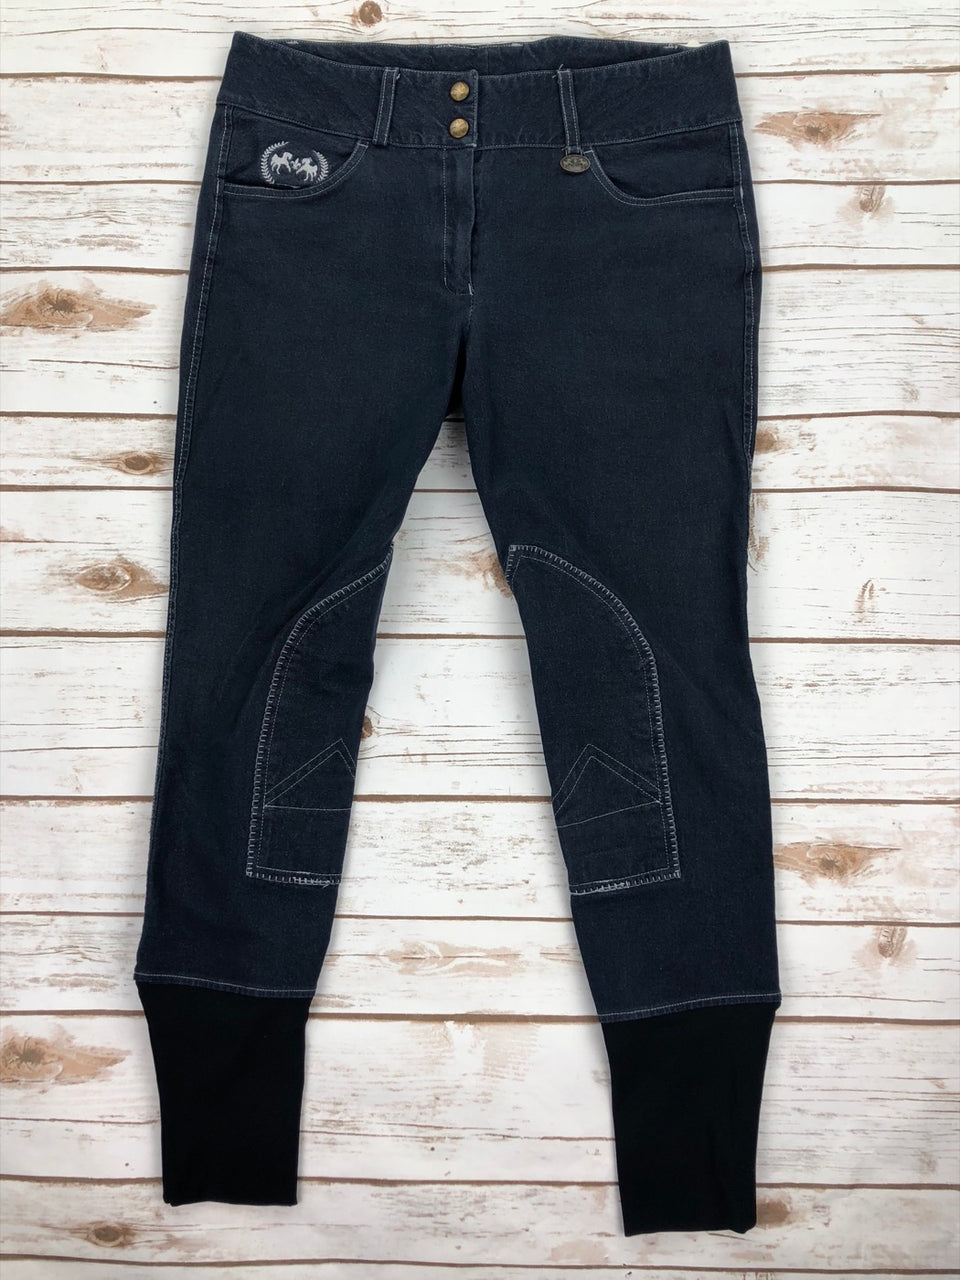 Equine Couture Bobbi Breeches in Denim - Women's 30R